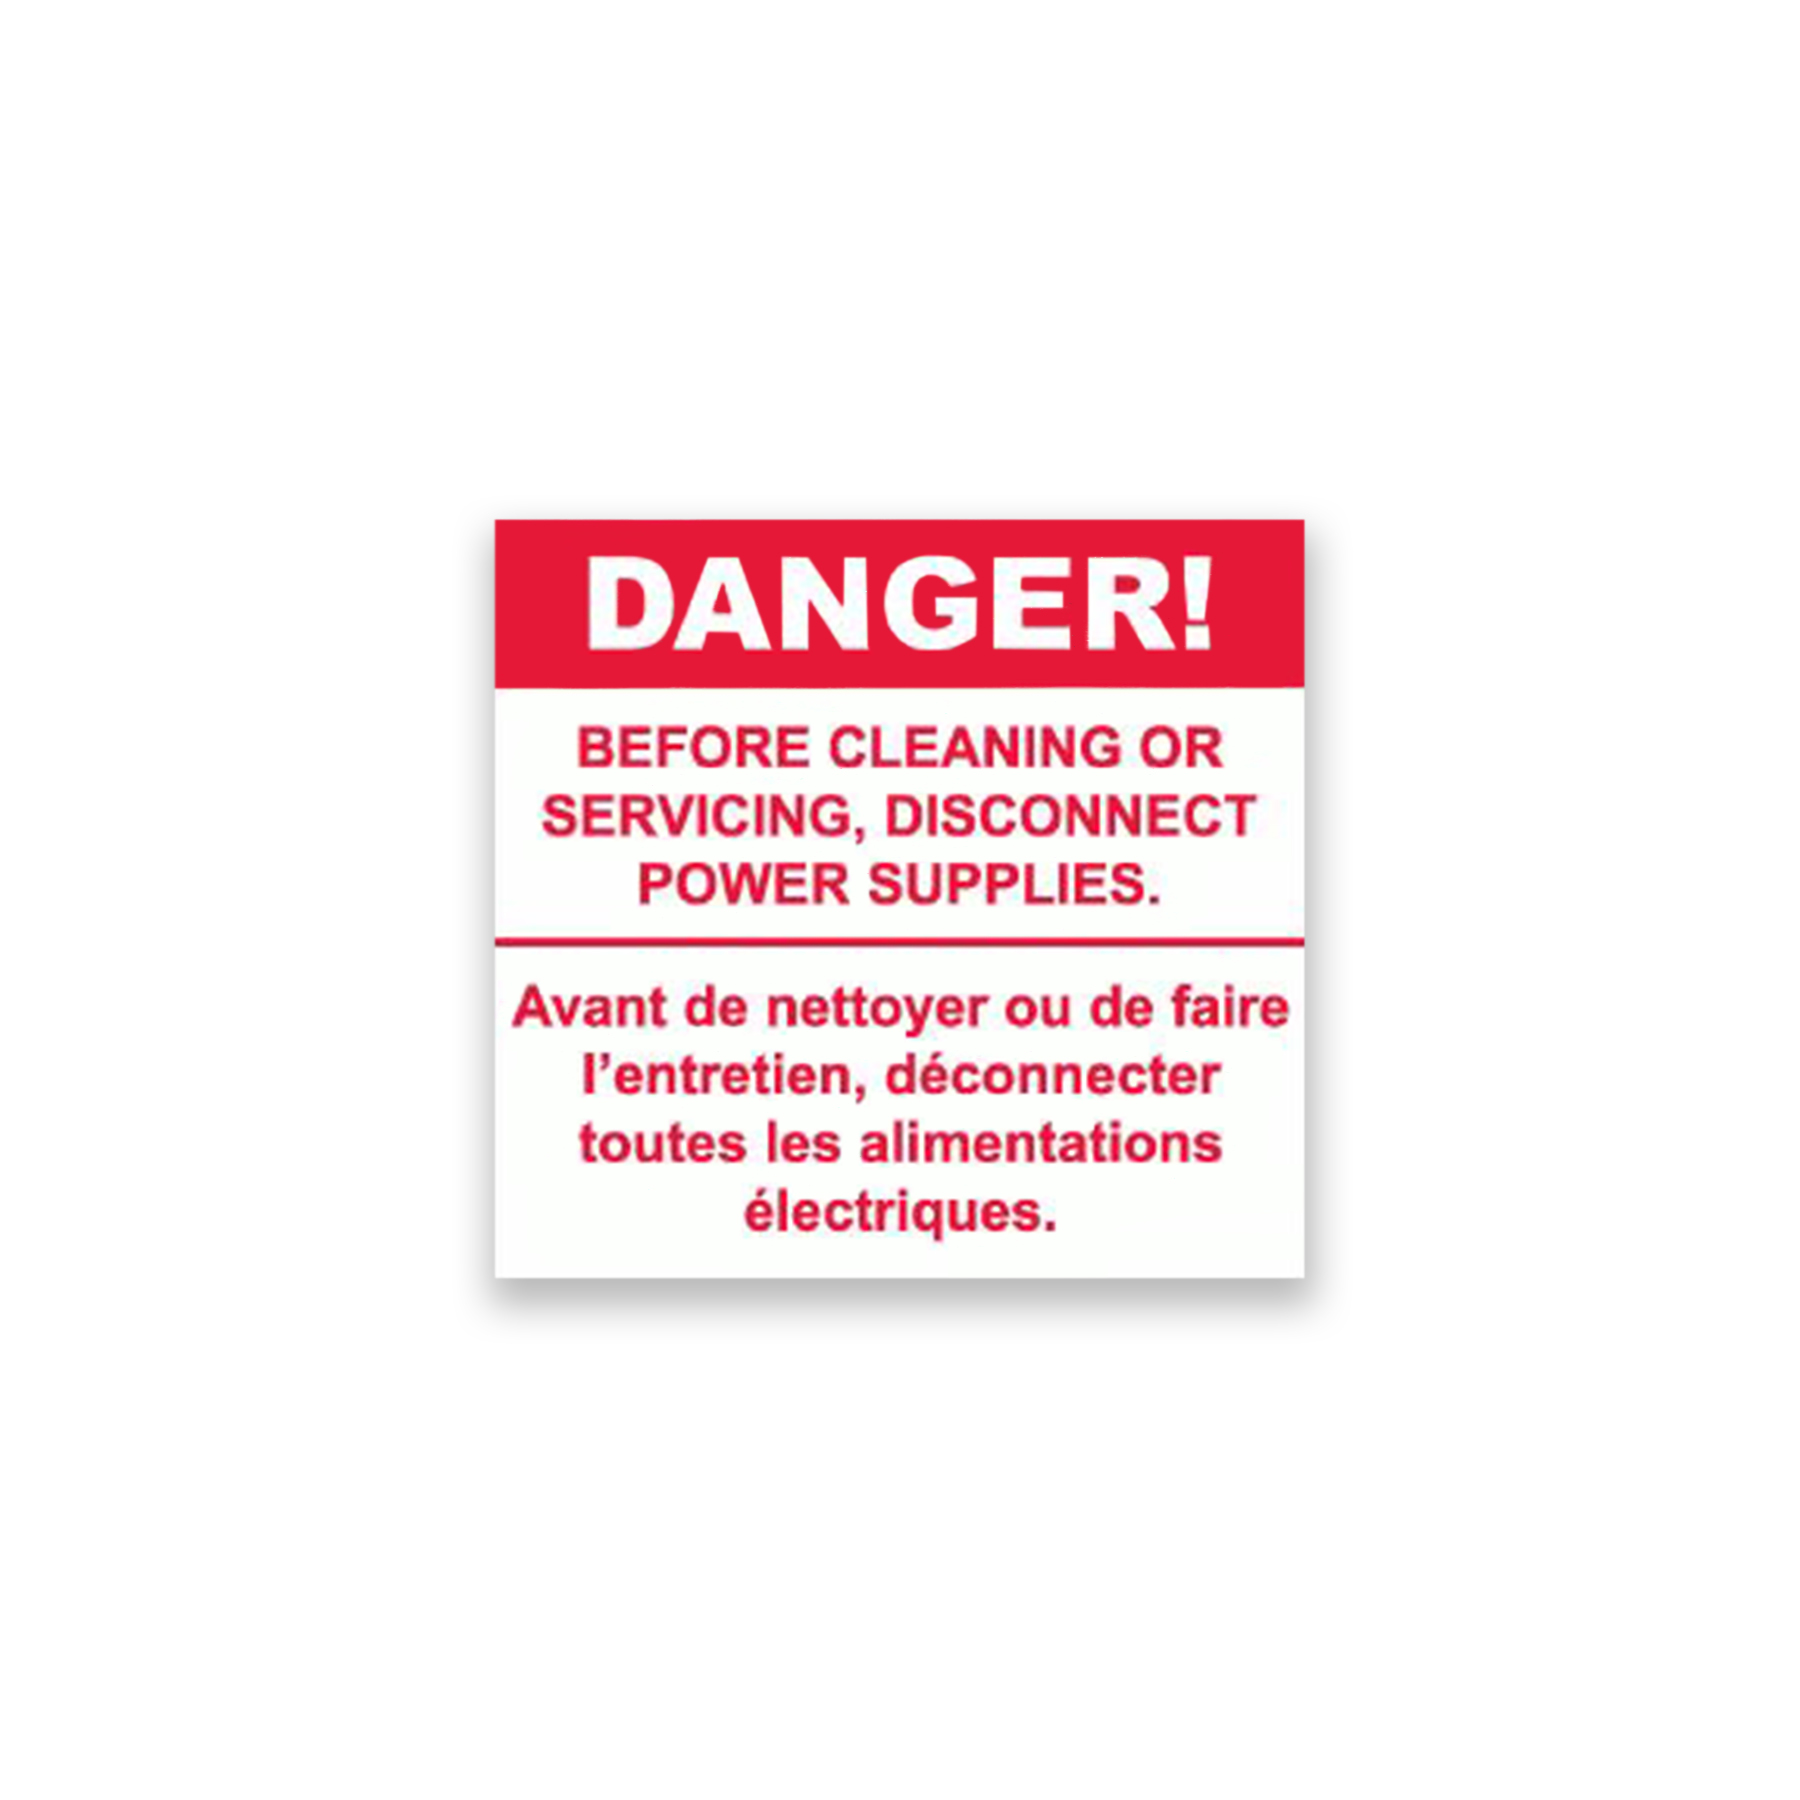 CONS Power Disconnect Danger Label, English/French